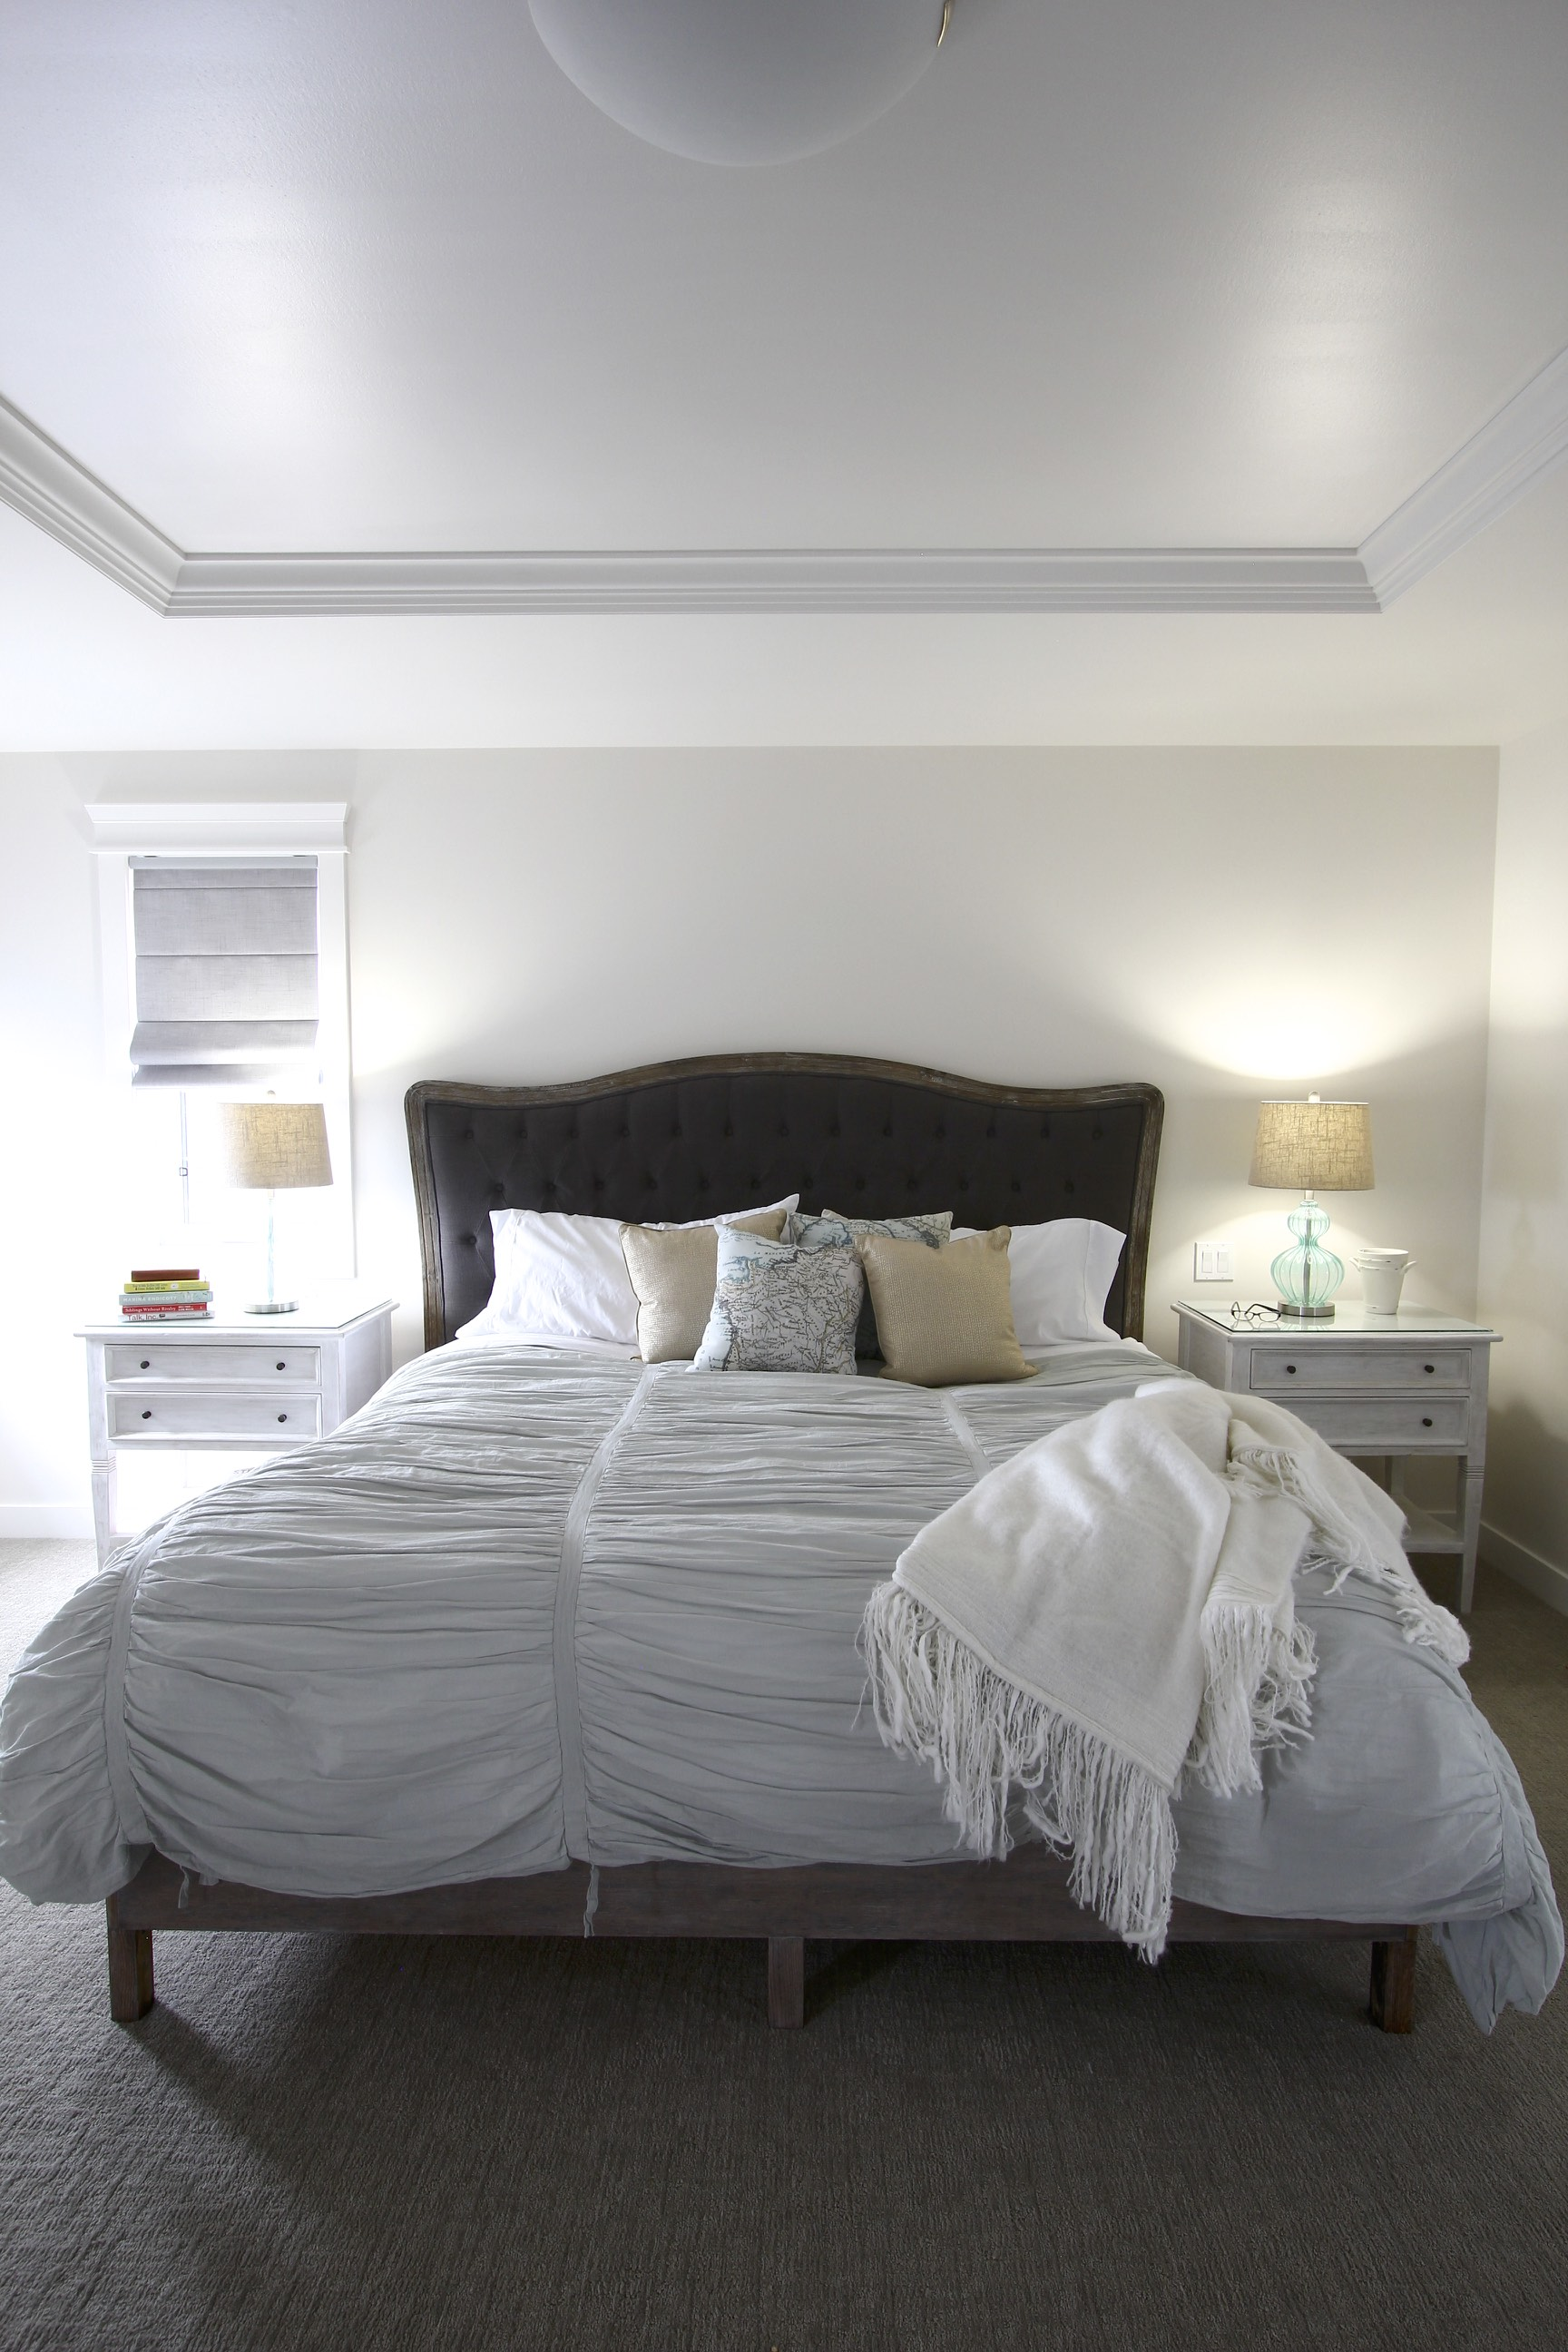 Metric Design Centre, Interior Design, Saskatoon, Residential Design, New Home Build, Transitional Design, Master Bedroom, Upholstered Bedframe, White Nightstands, Teal Glass Lamp, Bedding, Accent Pillows, Serene Bedroom, White Throw, Recessed Ceiling.jpg